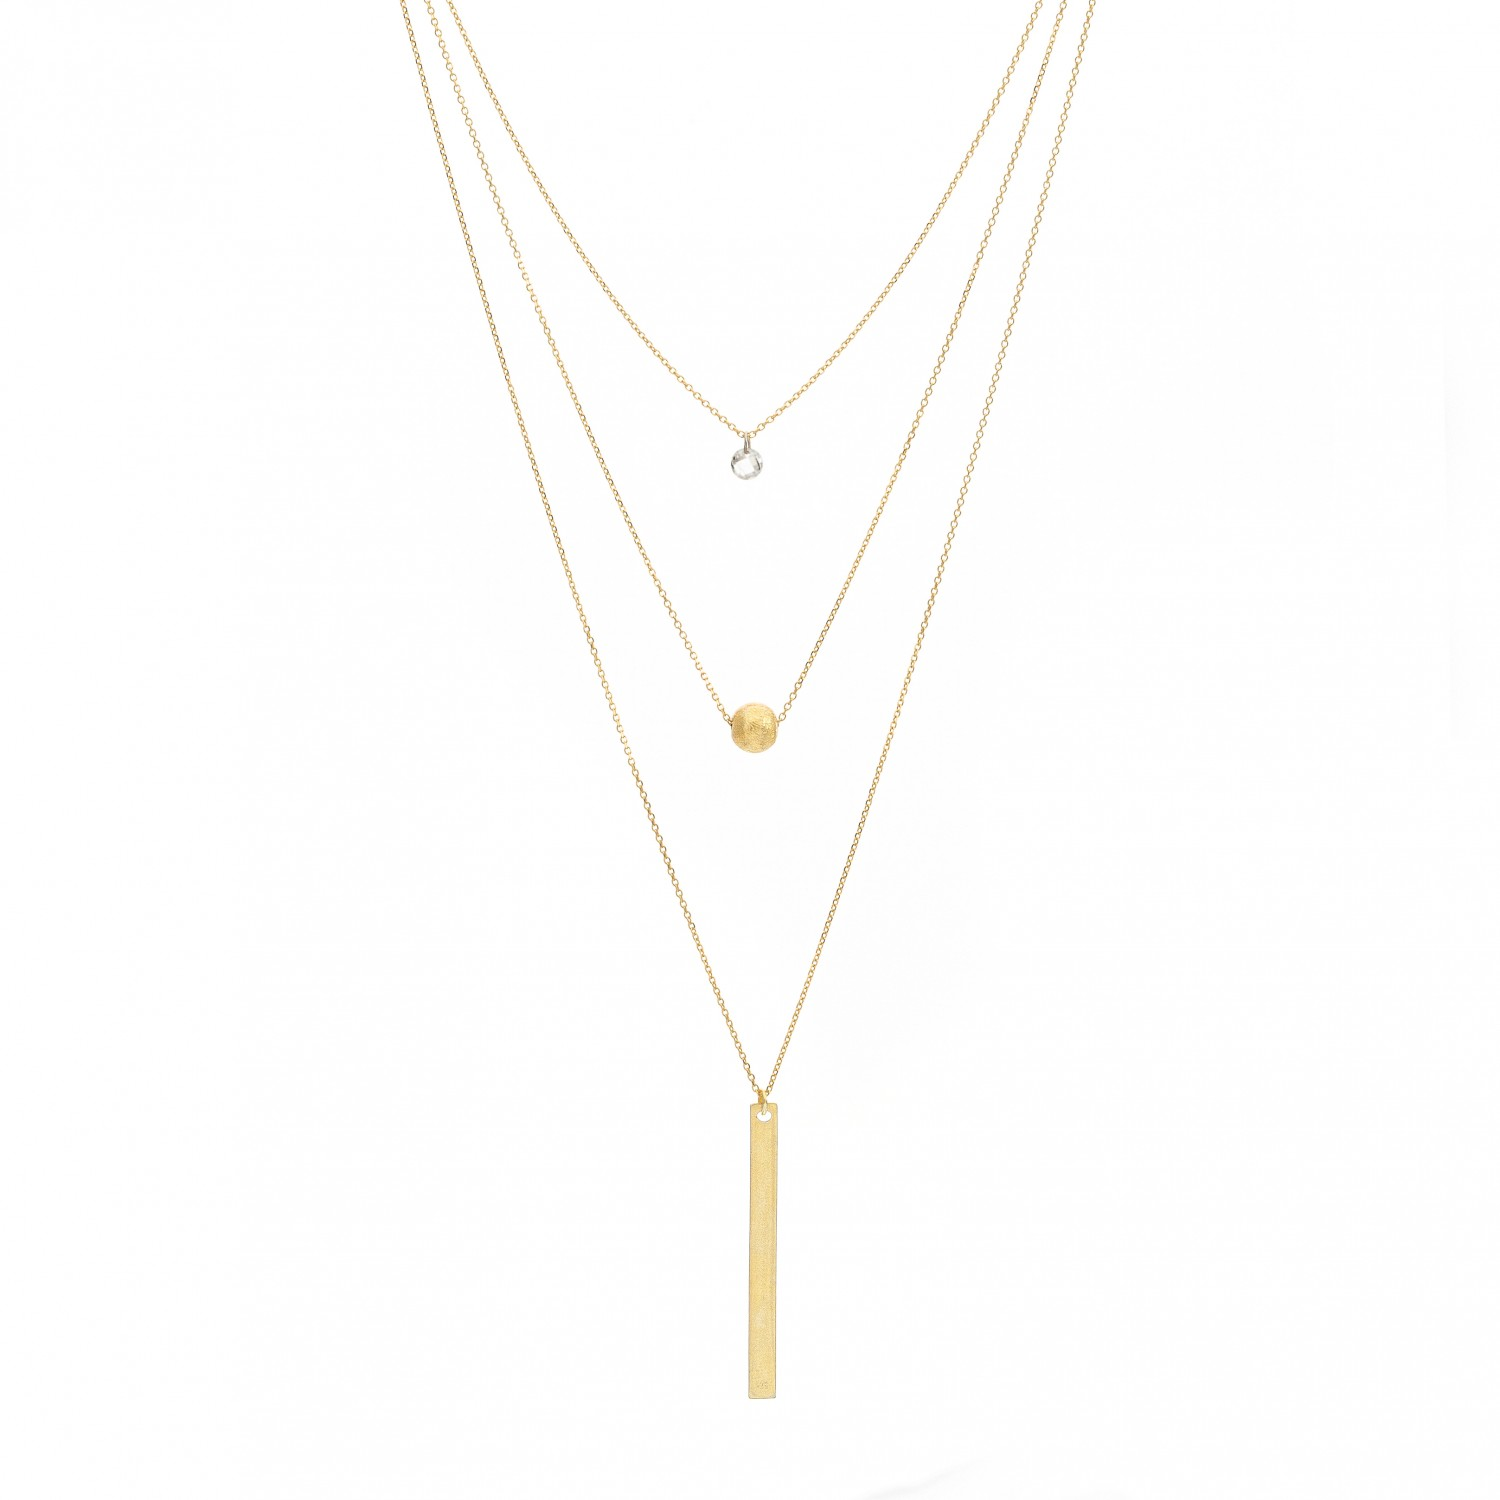 Triple Layered CZirconia & ID Bar Necklace